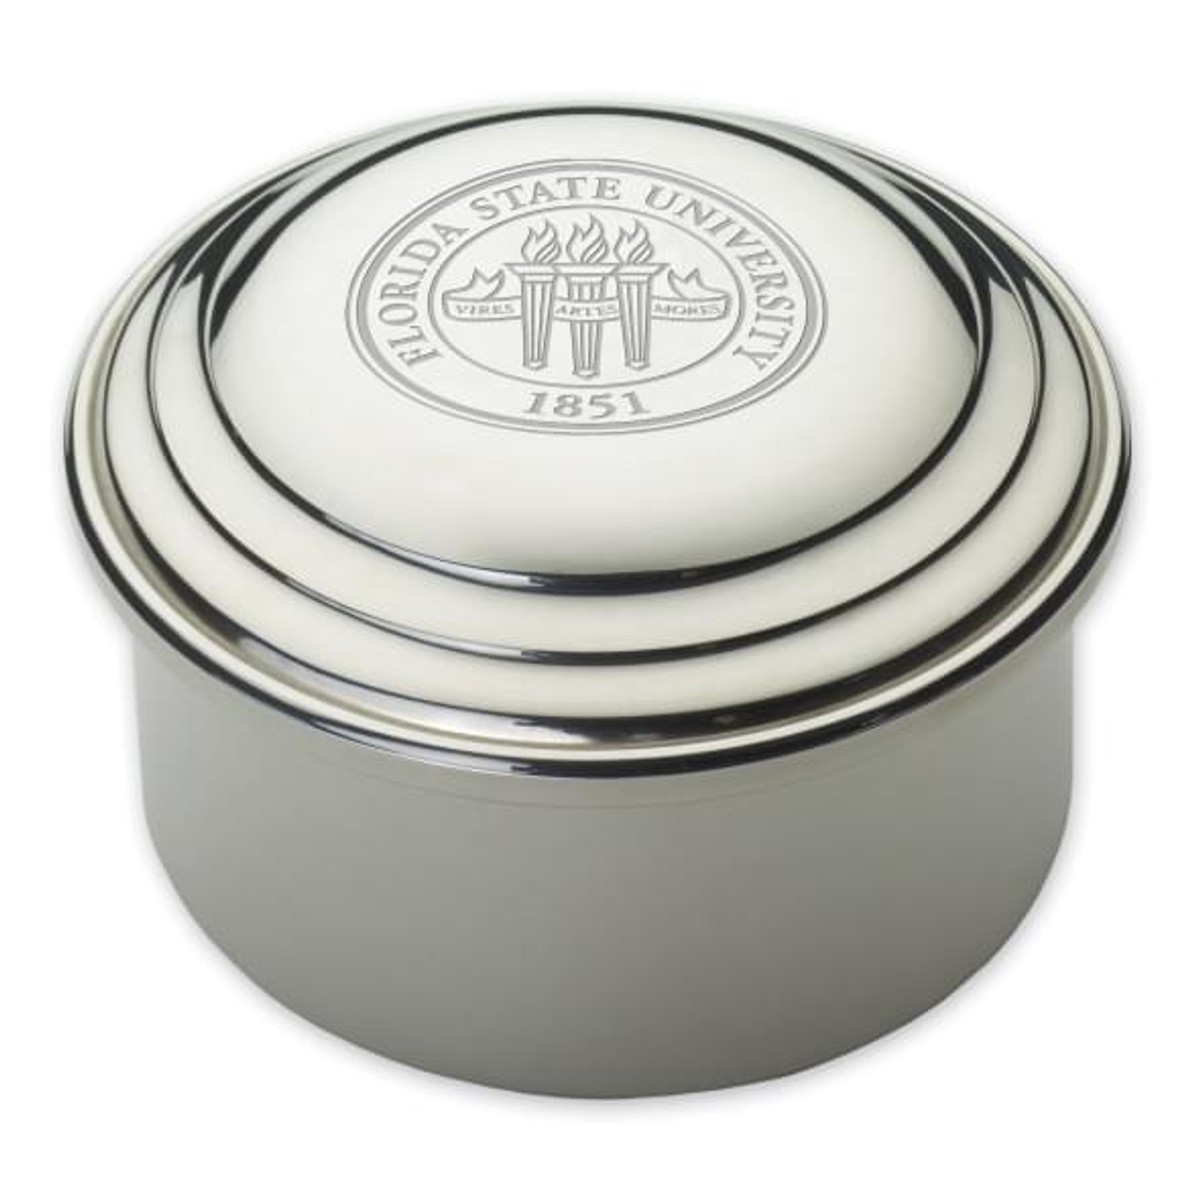 Florida State University Pewter Keepsake Box At M Lahart Amp Co